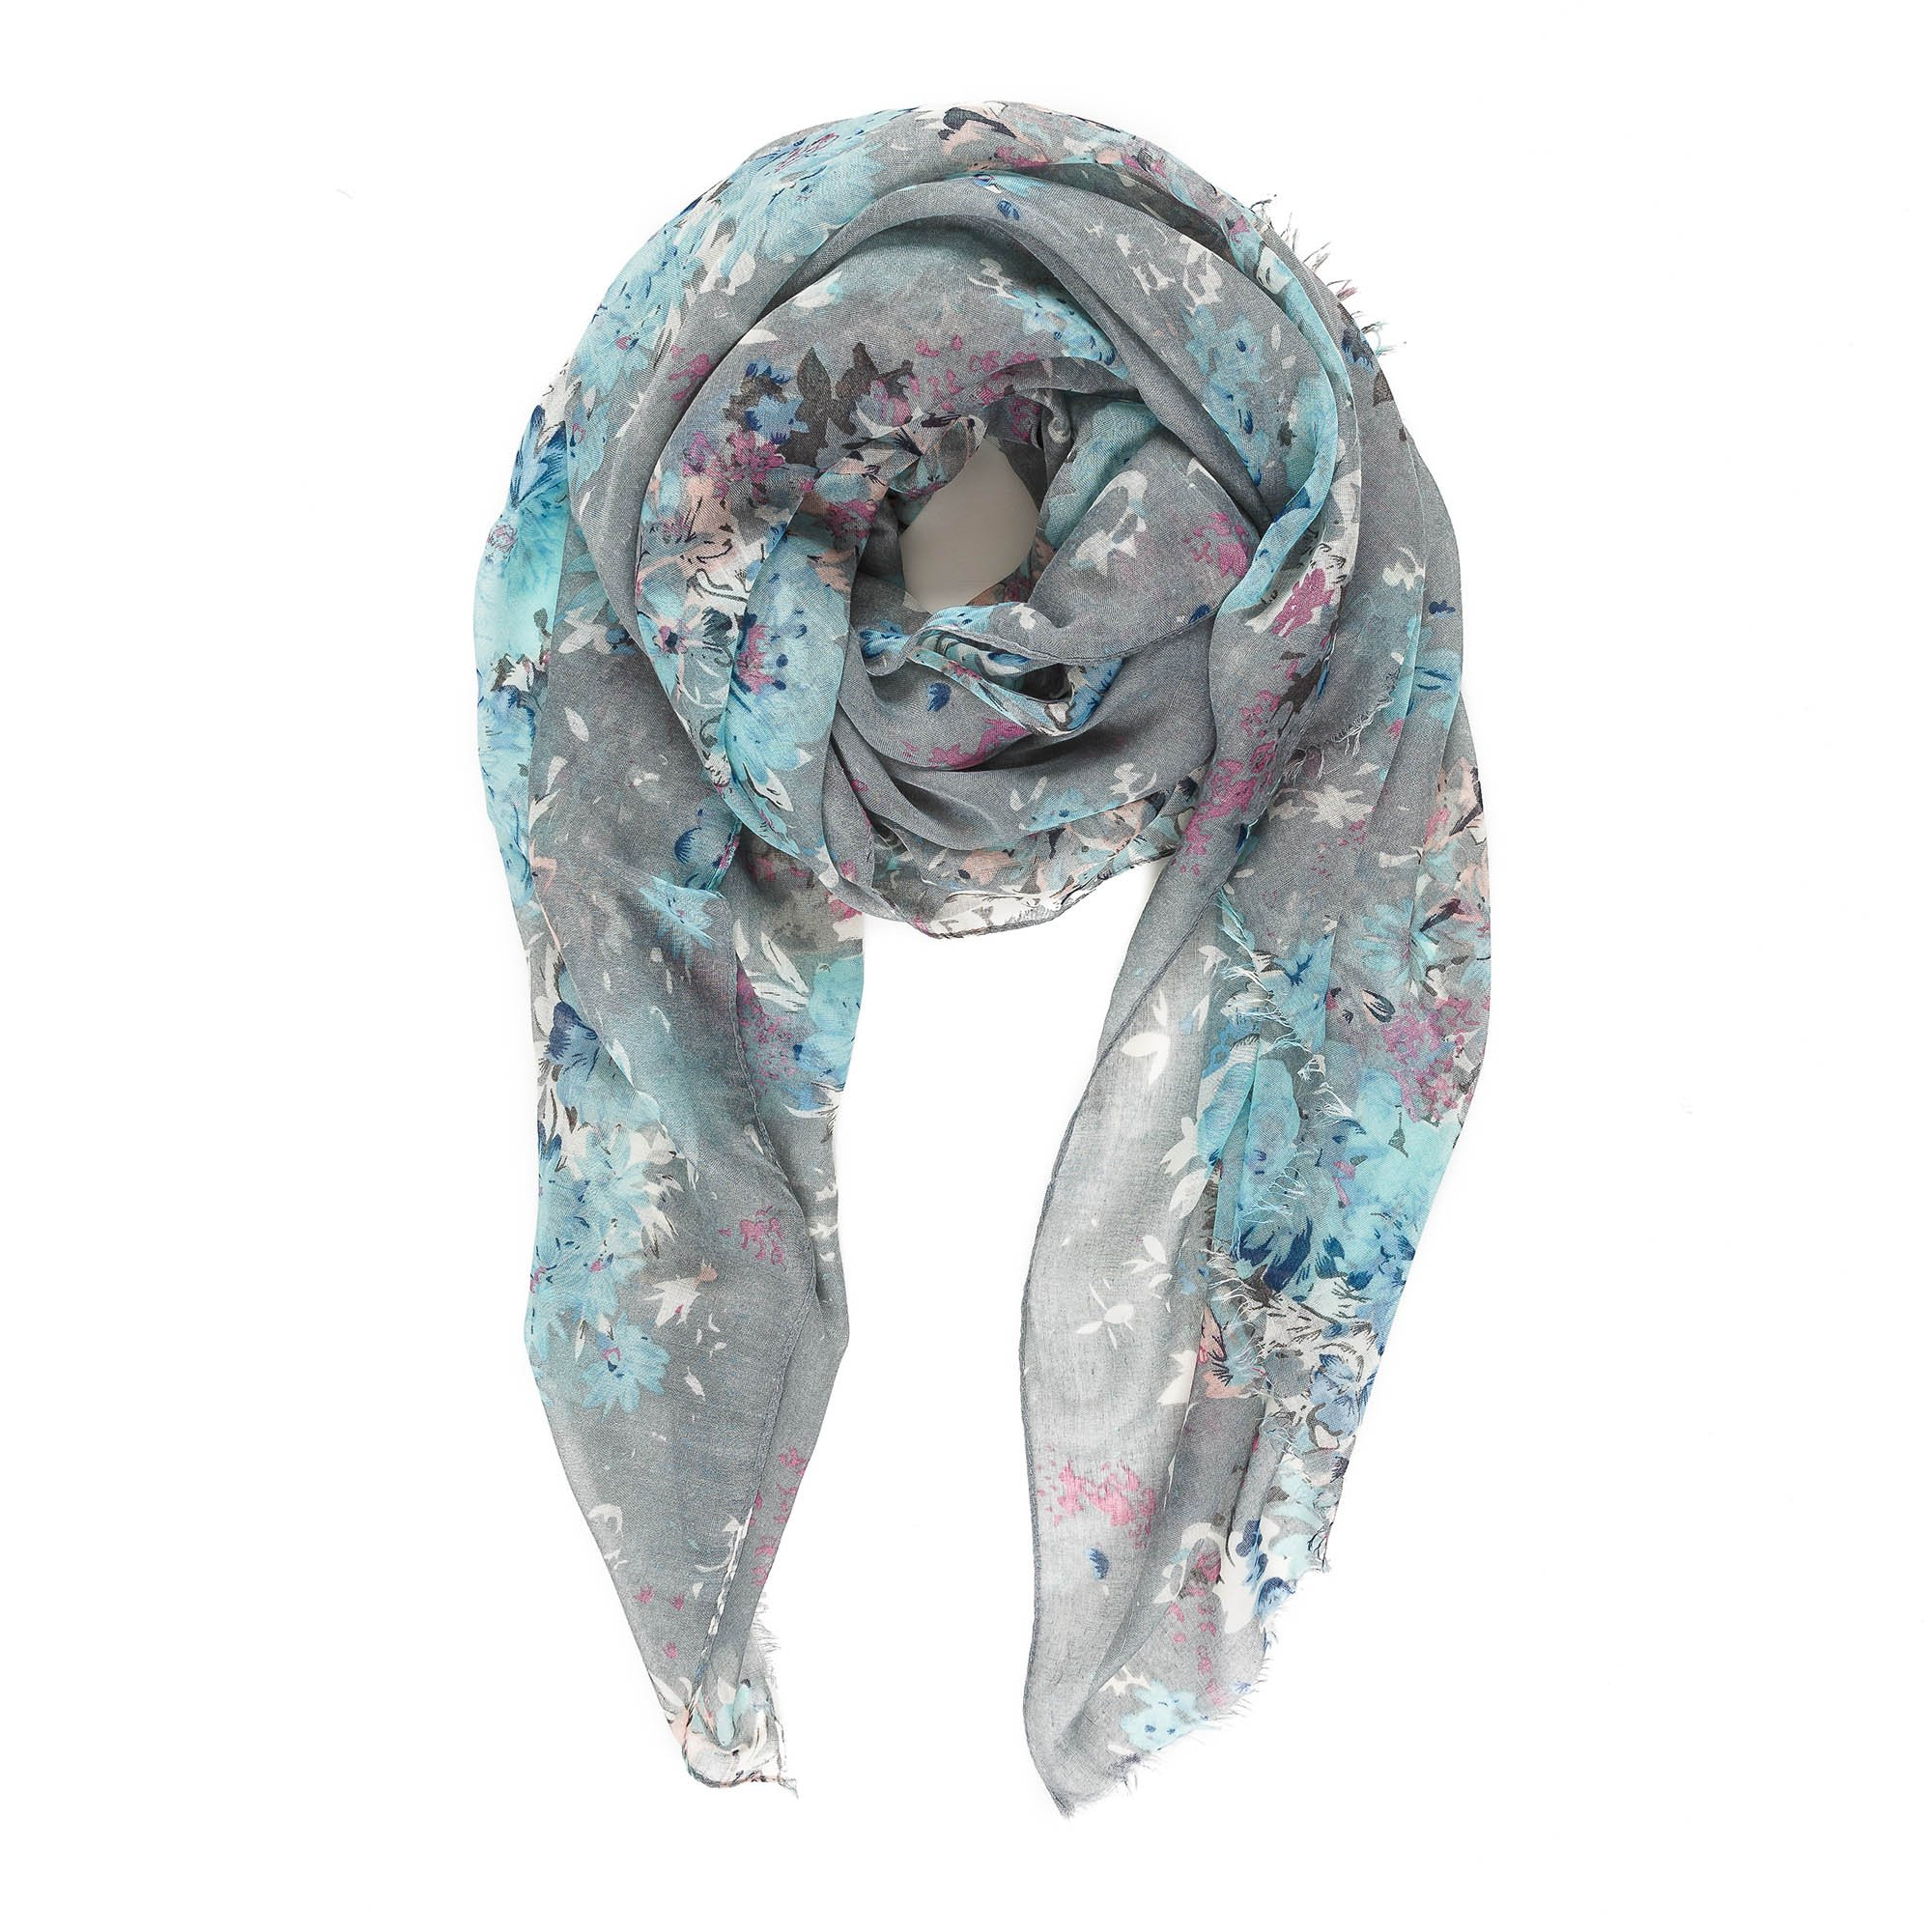 Scarf for Women Lightweight Fashion Fall Winter Gray Grey Floral Flower Scarves Shawl Wraps by Melifluos (P077-4) by MELIFLUOS DESIGNED IN SPAIN